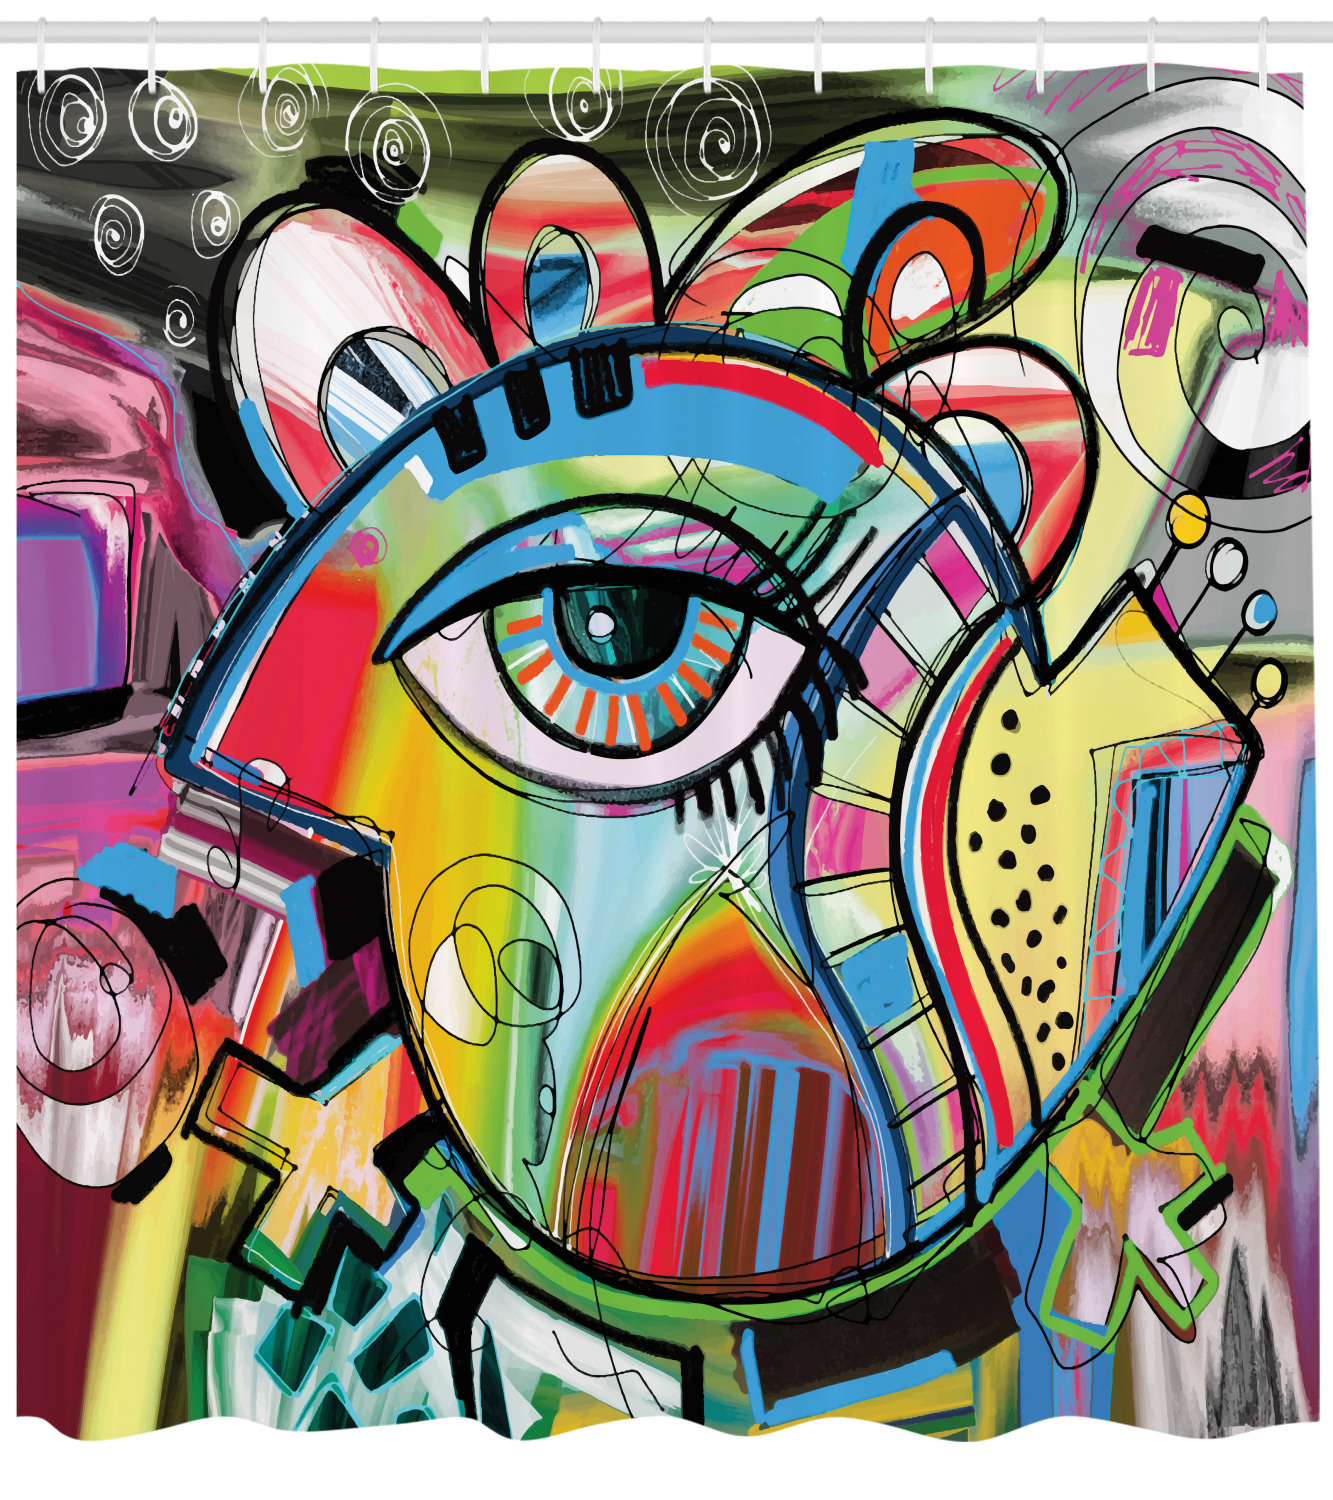 Contemporary Shower Curtain Lively Colored Hand Drawn Style Artwork Abstract Composition With An Eye Motif Fabric Bathroom Set With Hooks 69w X 84l